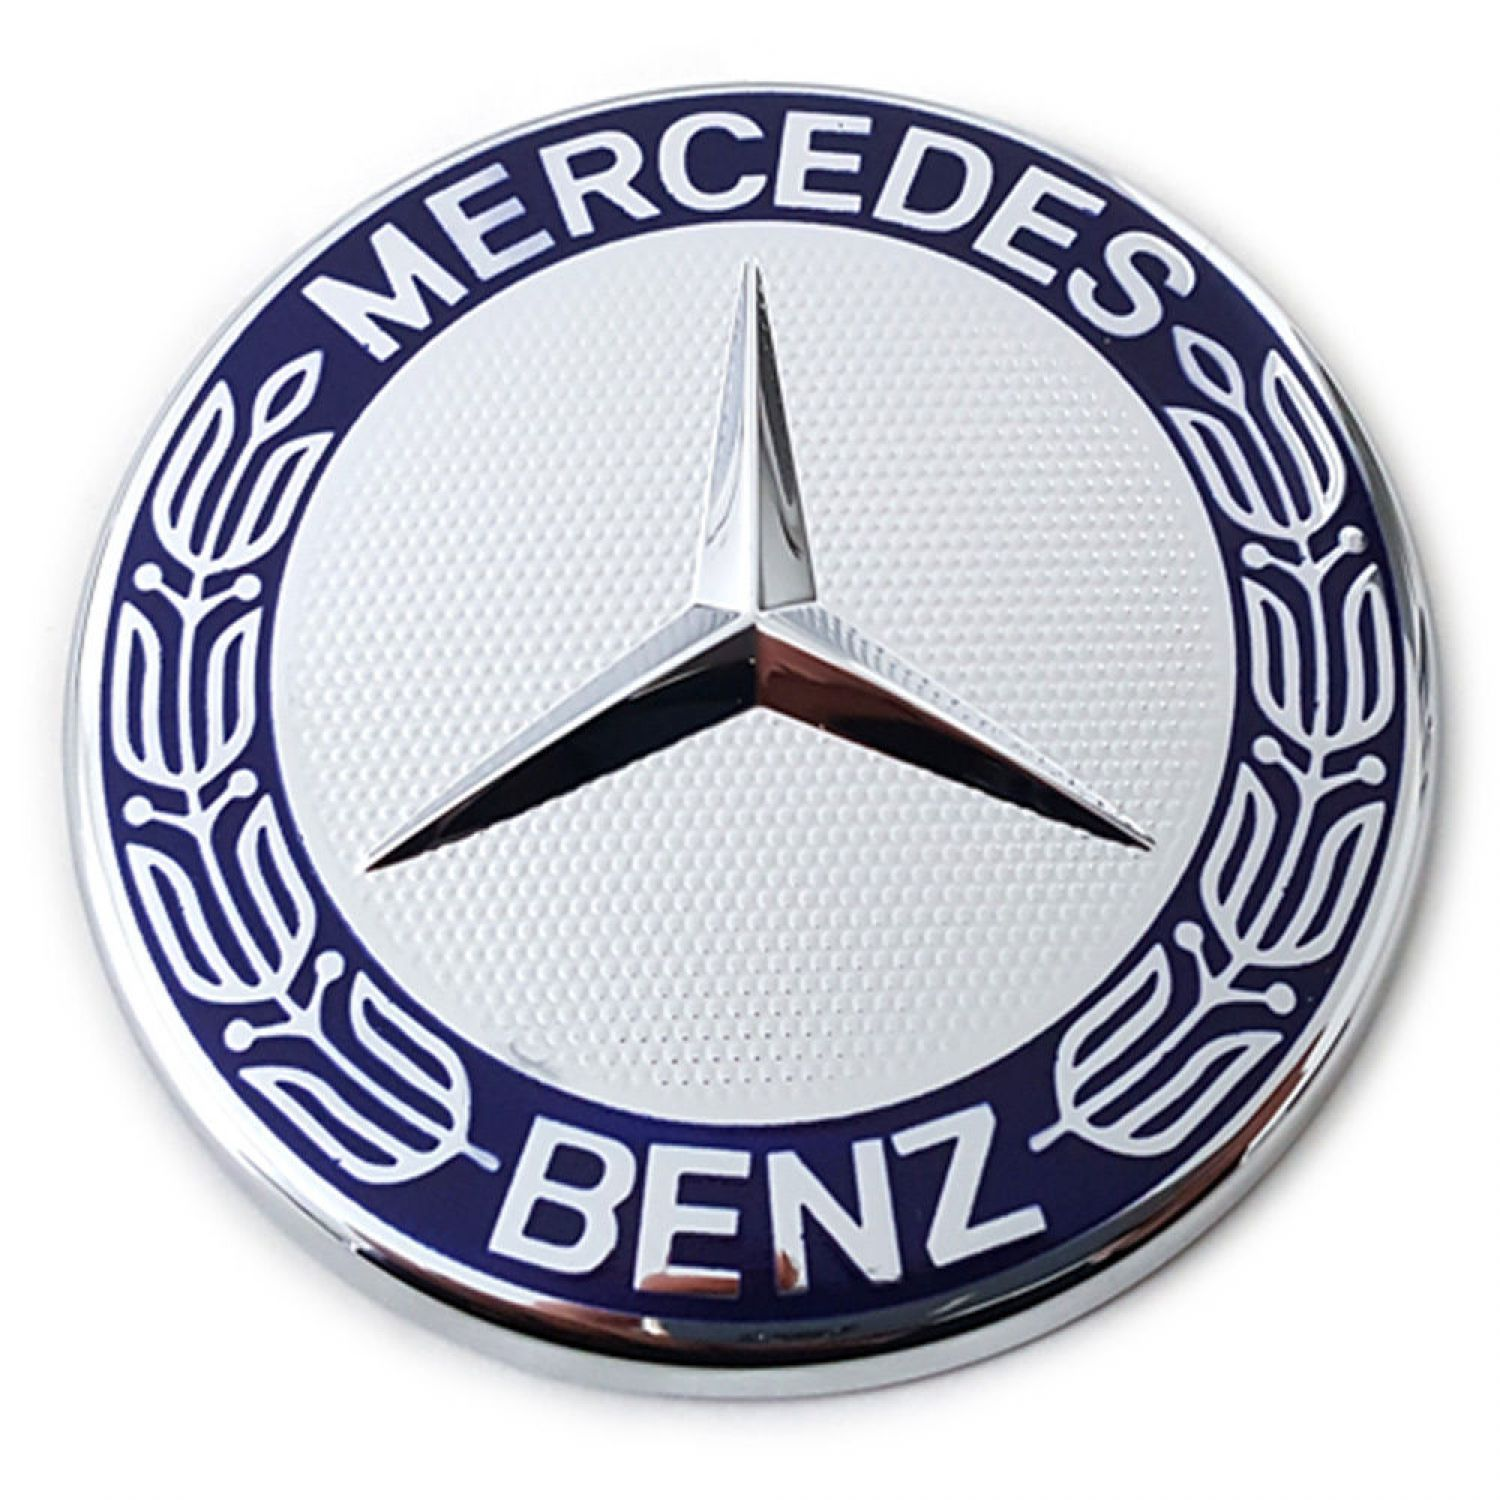 Mercedes benz sticker decal emblem stars bonnet a b c e g for Mercedes benz bonnet badge